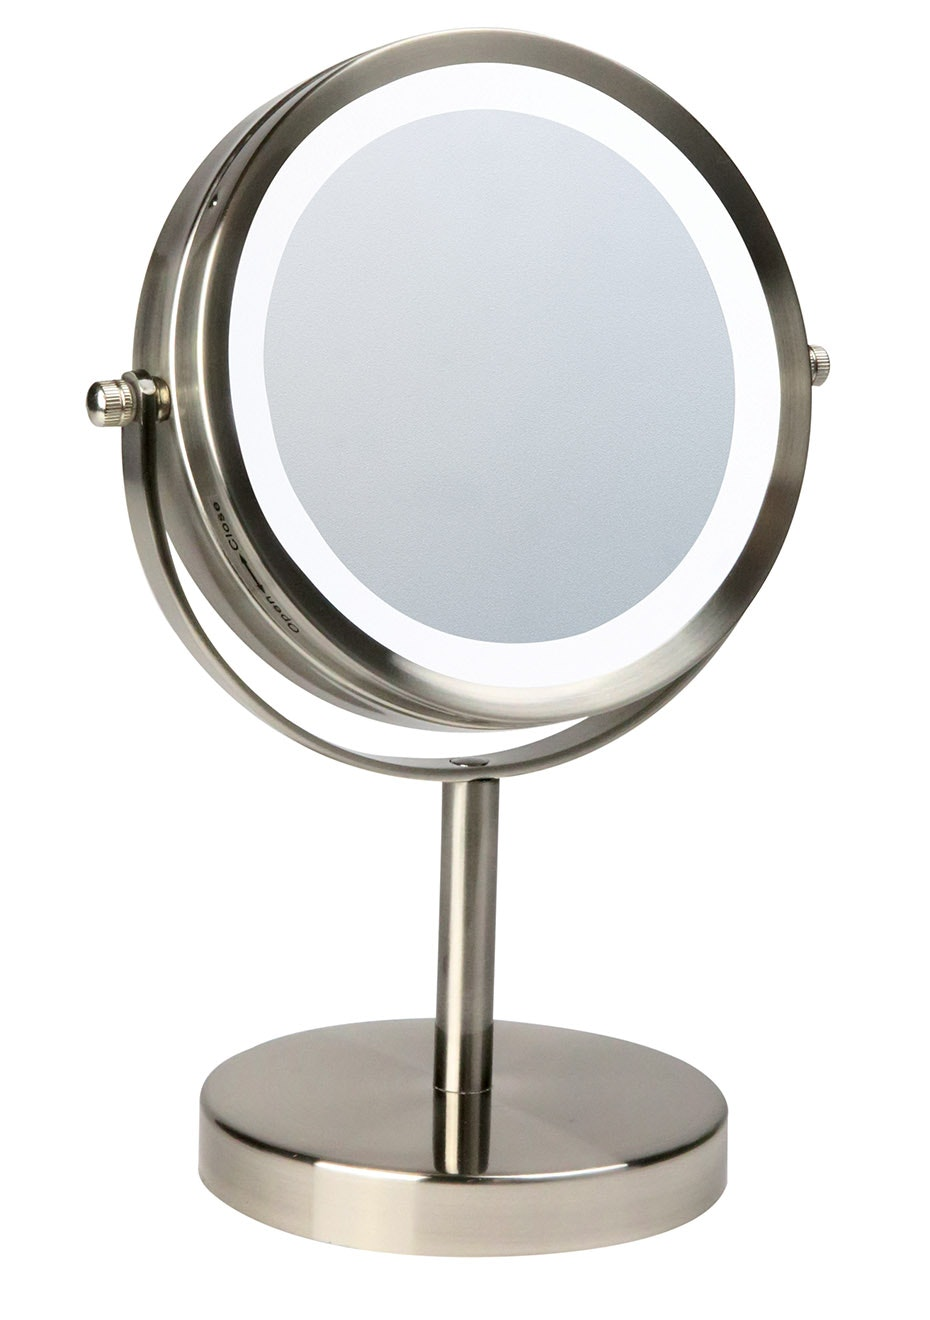 Homedics LED illuminated make up mirror - Compact (battery only)